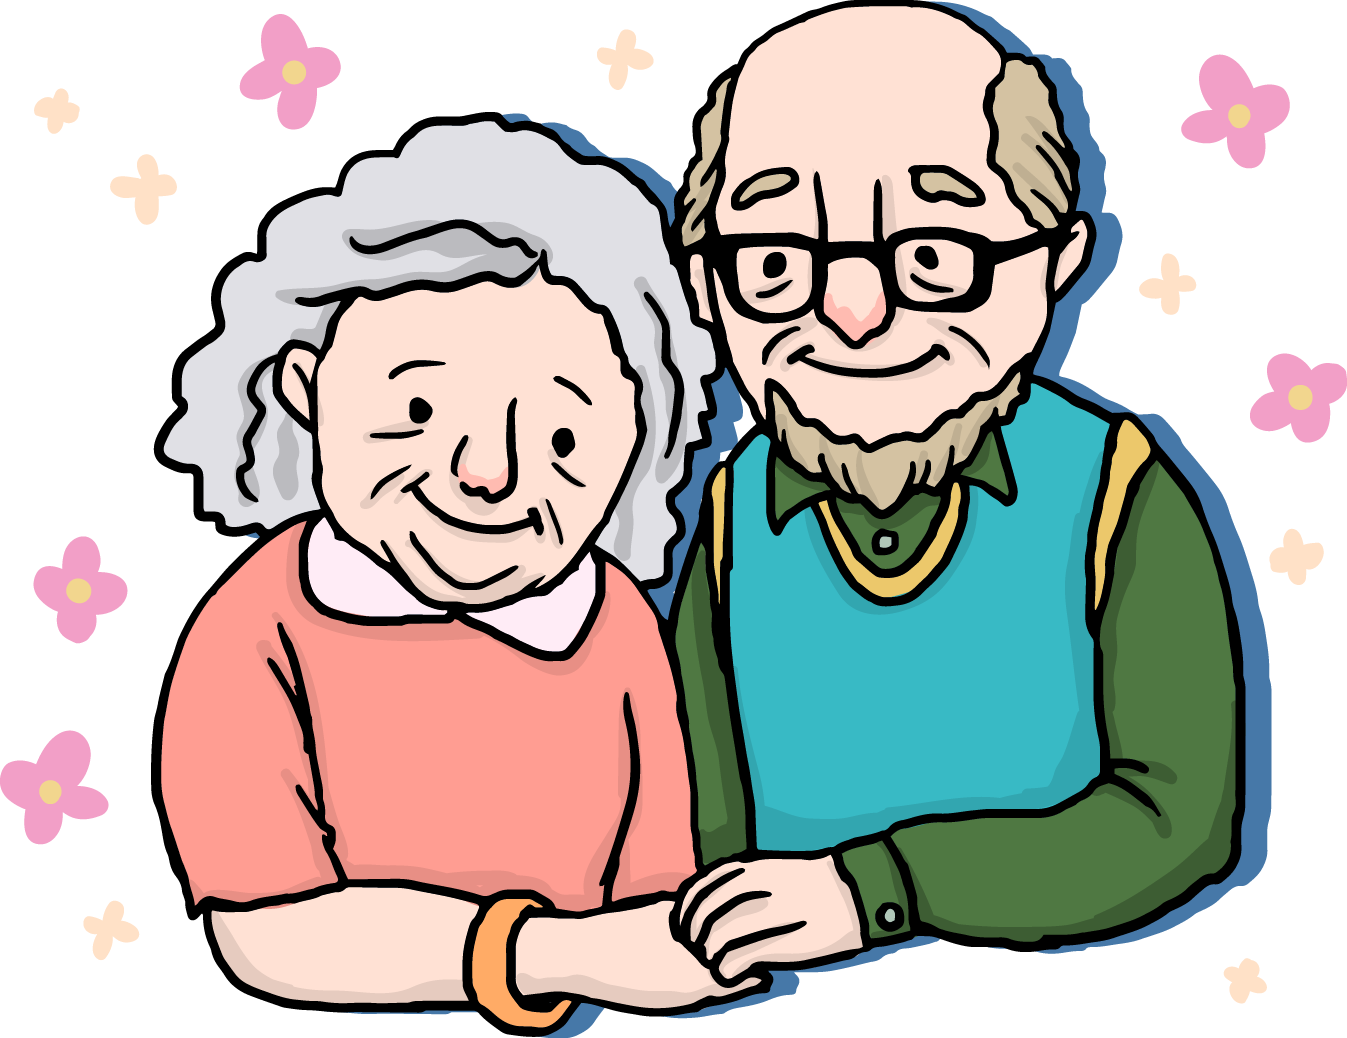 Fingers drawing happiness. Couple old age cartoon